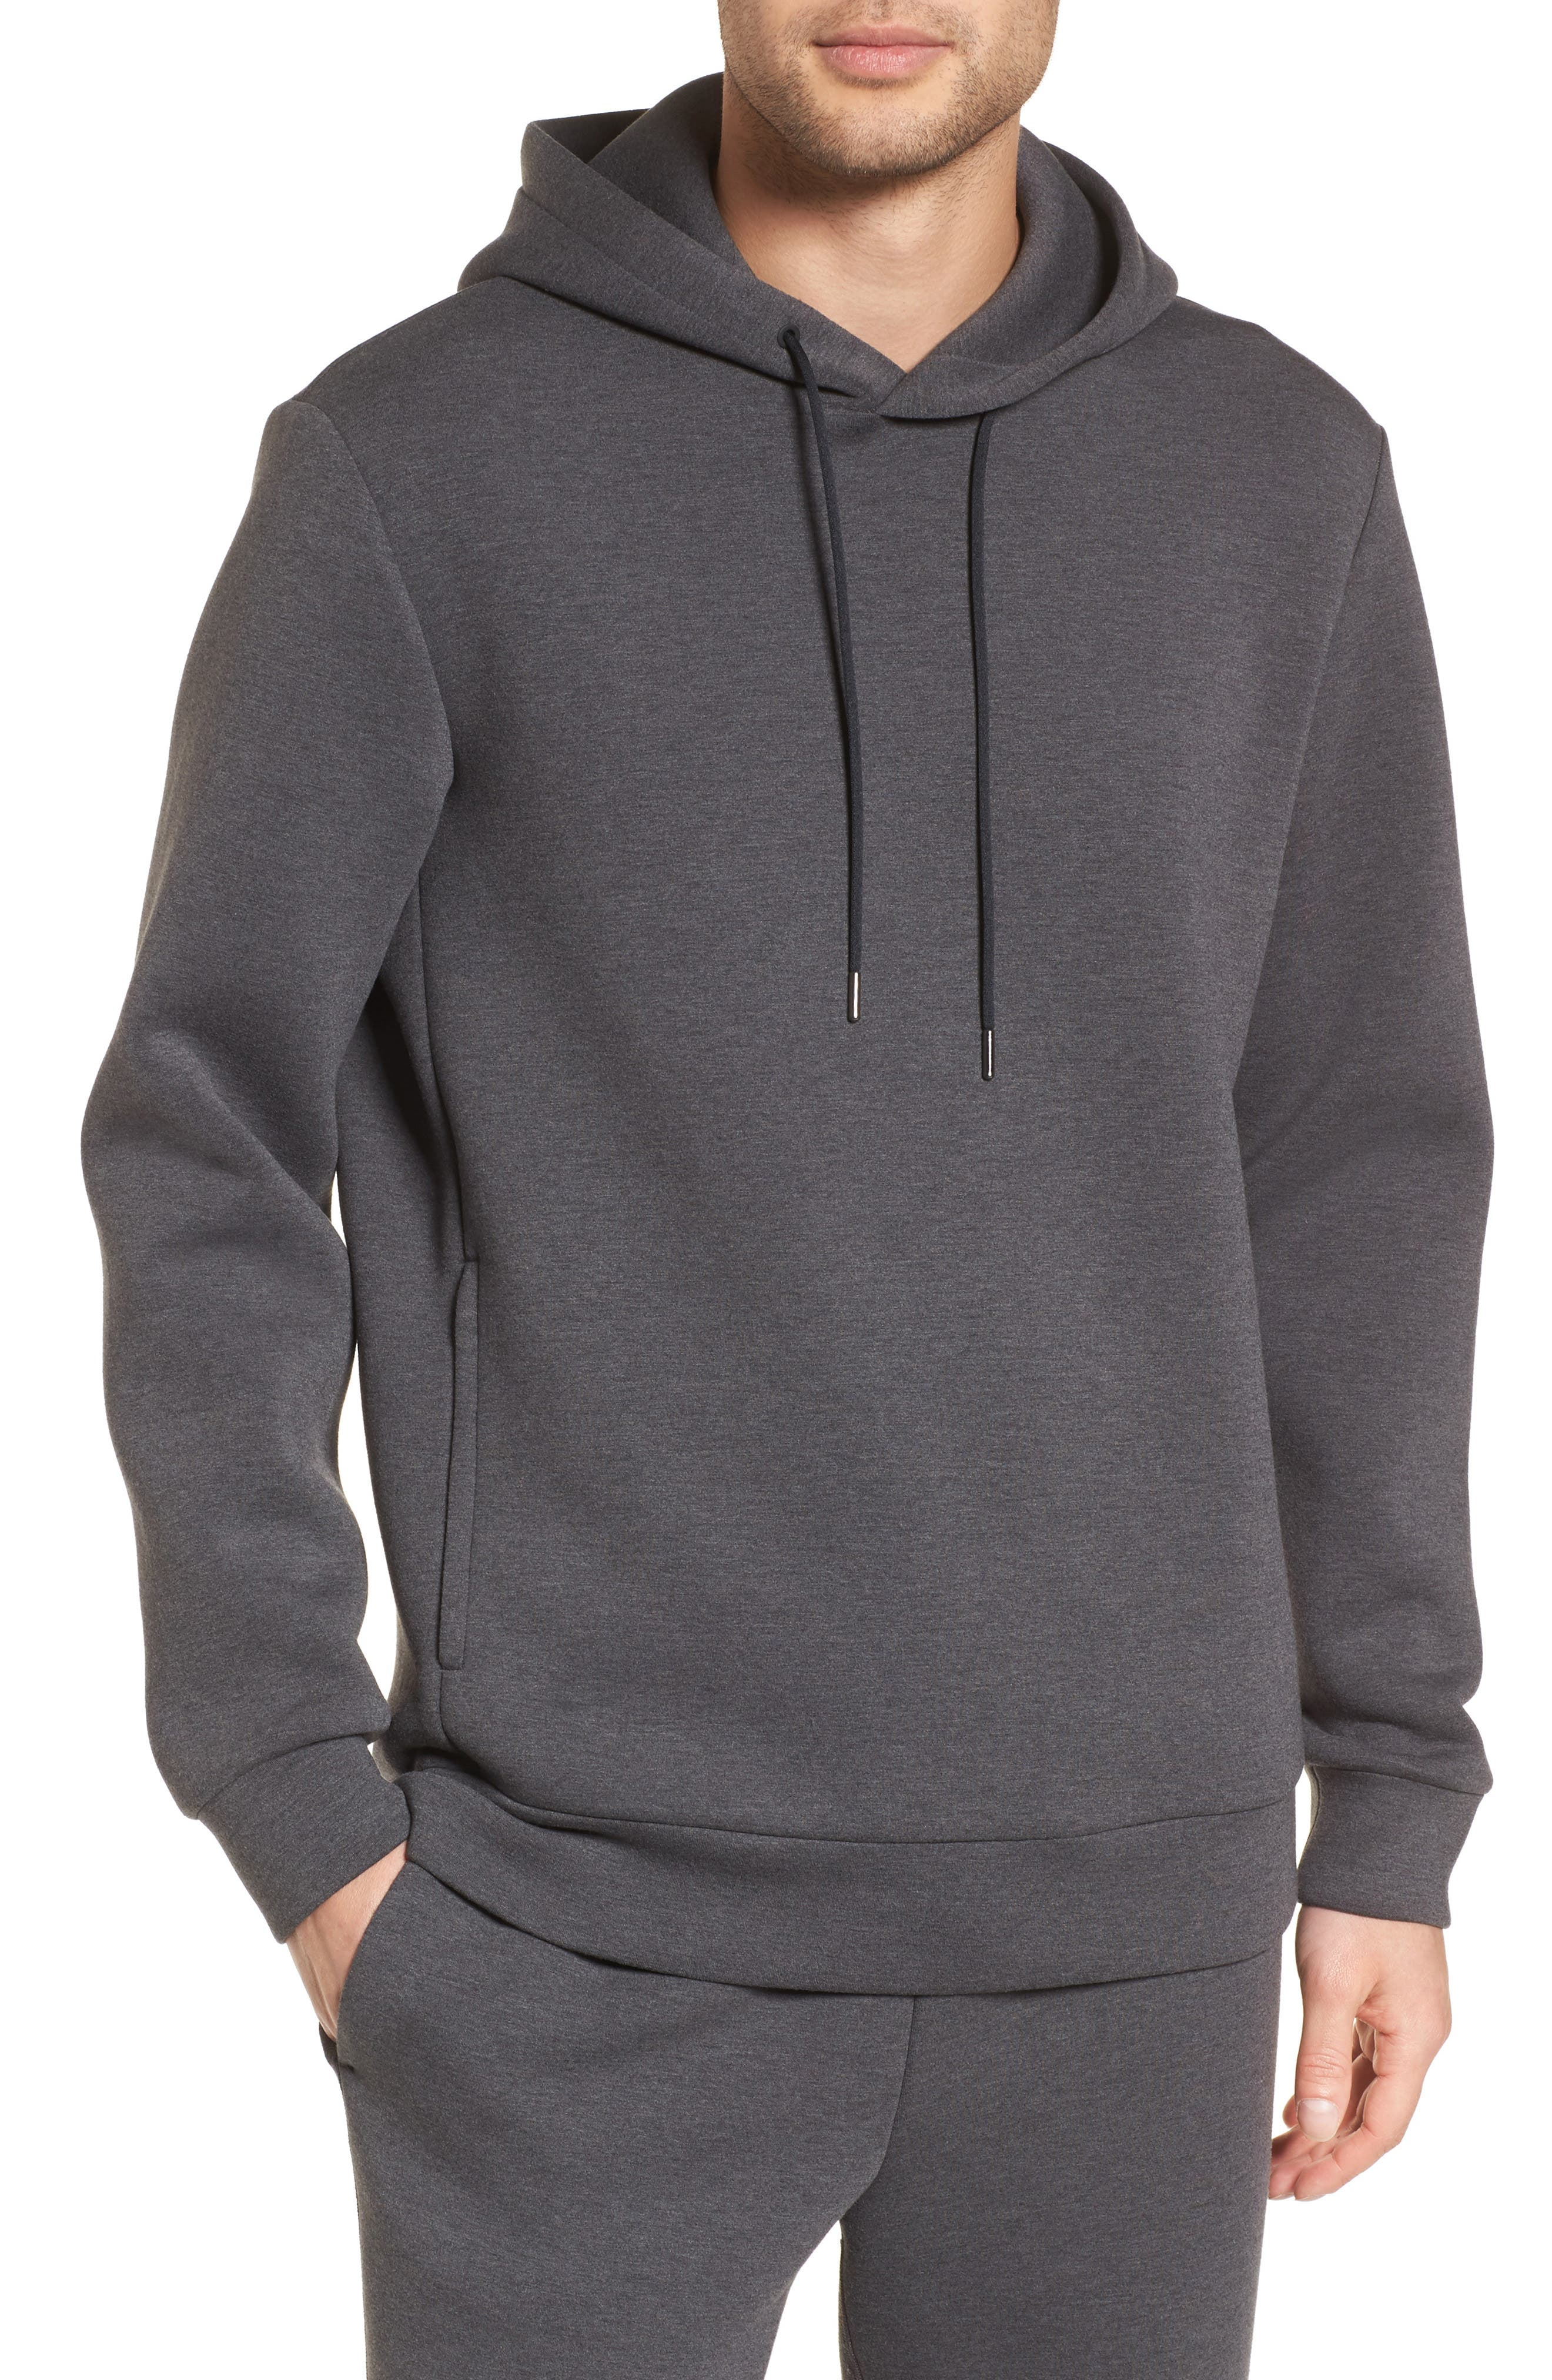 Scuba Pullover Hoodie,                             Main thumbnail 1, color,                             Charcoal Heather